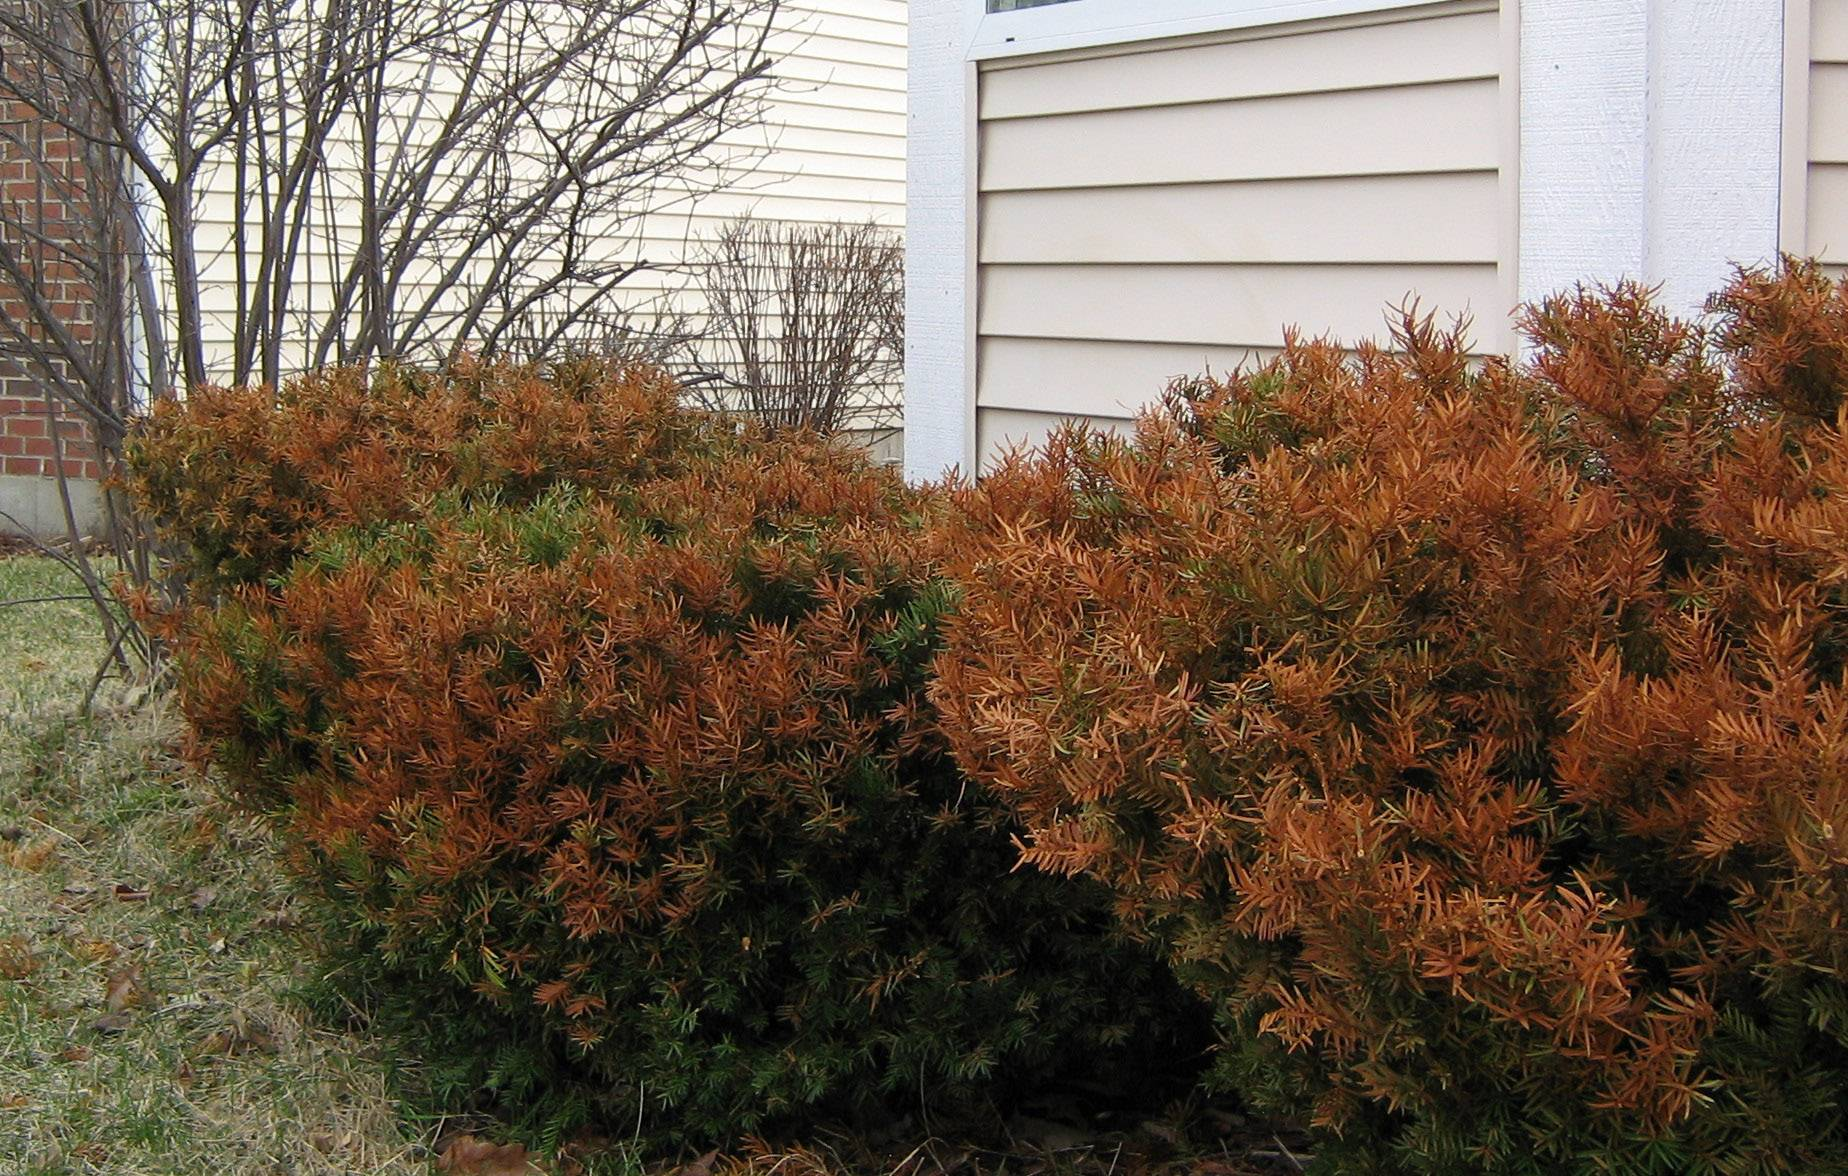 Experts say to give evergreens time to see if they recover from winter burn. Evergreens were one of the few tree species significantly harmed by this year's brutal winter.